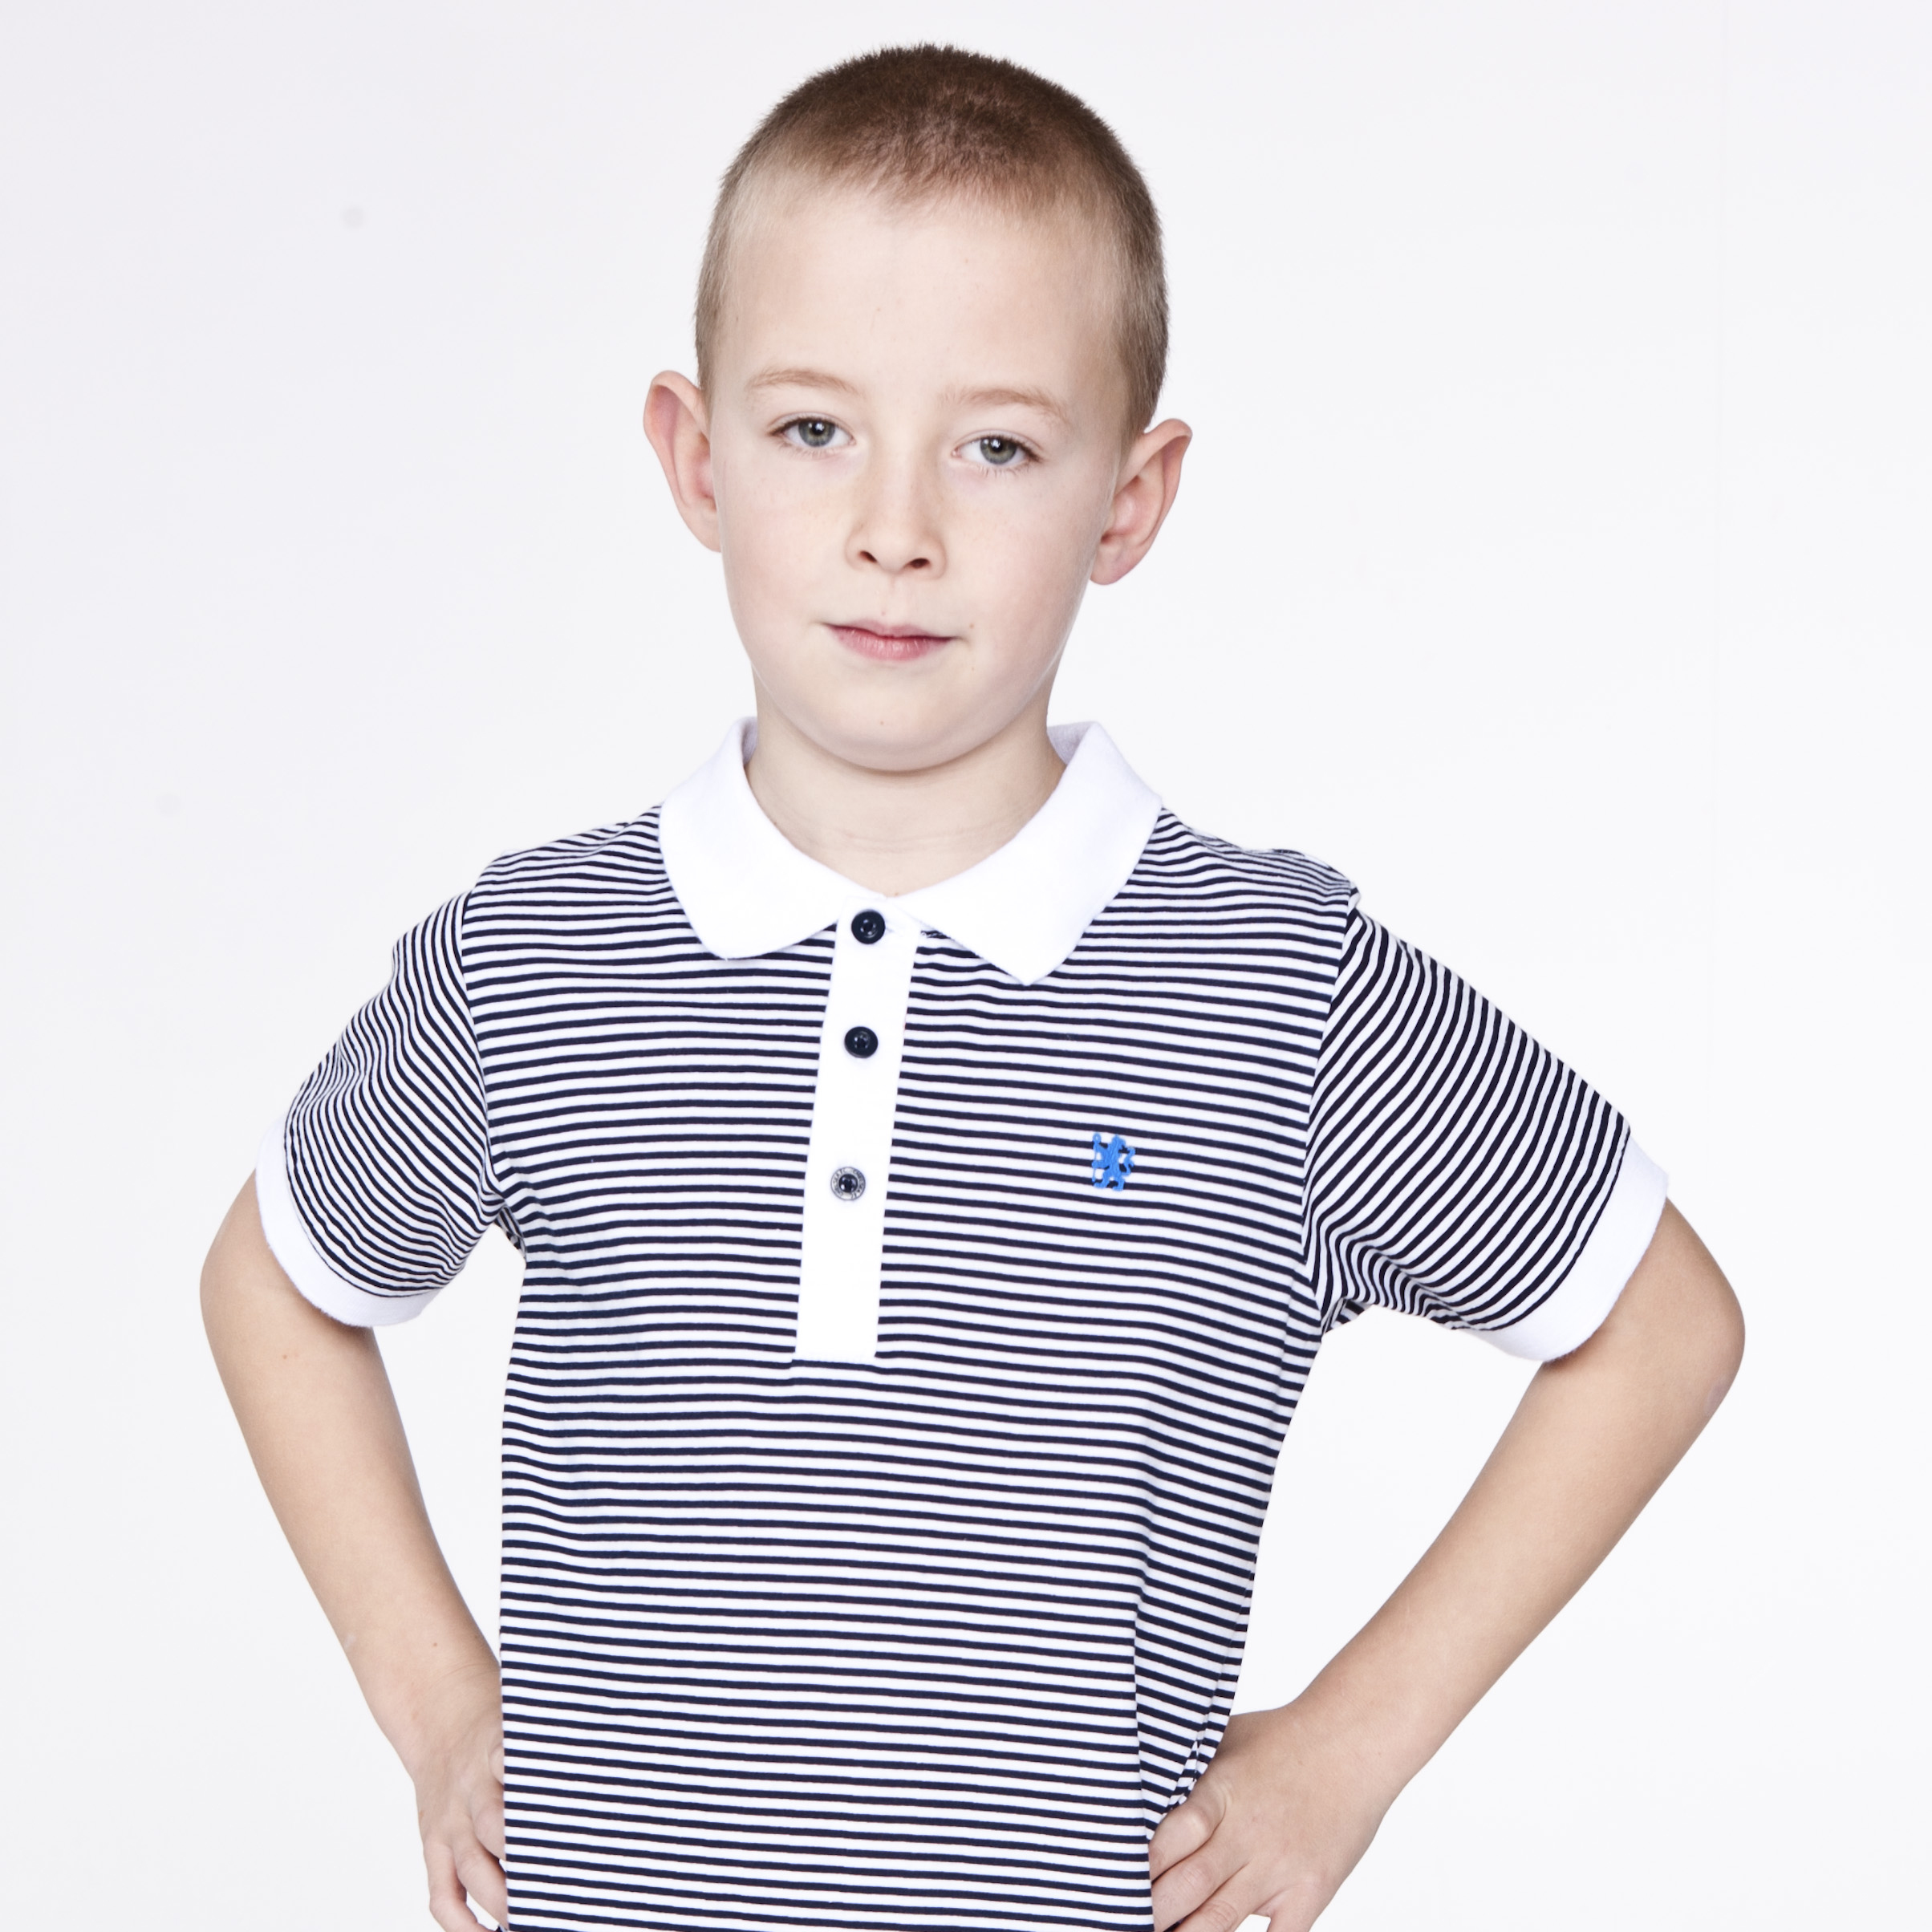 Chelsea Fashion Pin Striped Polo - Navy/White - Boys